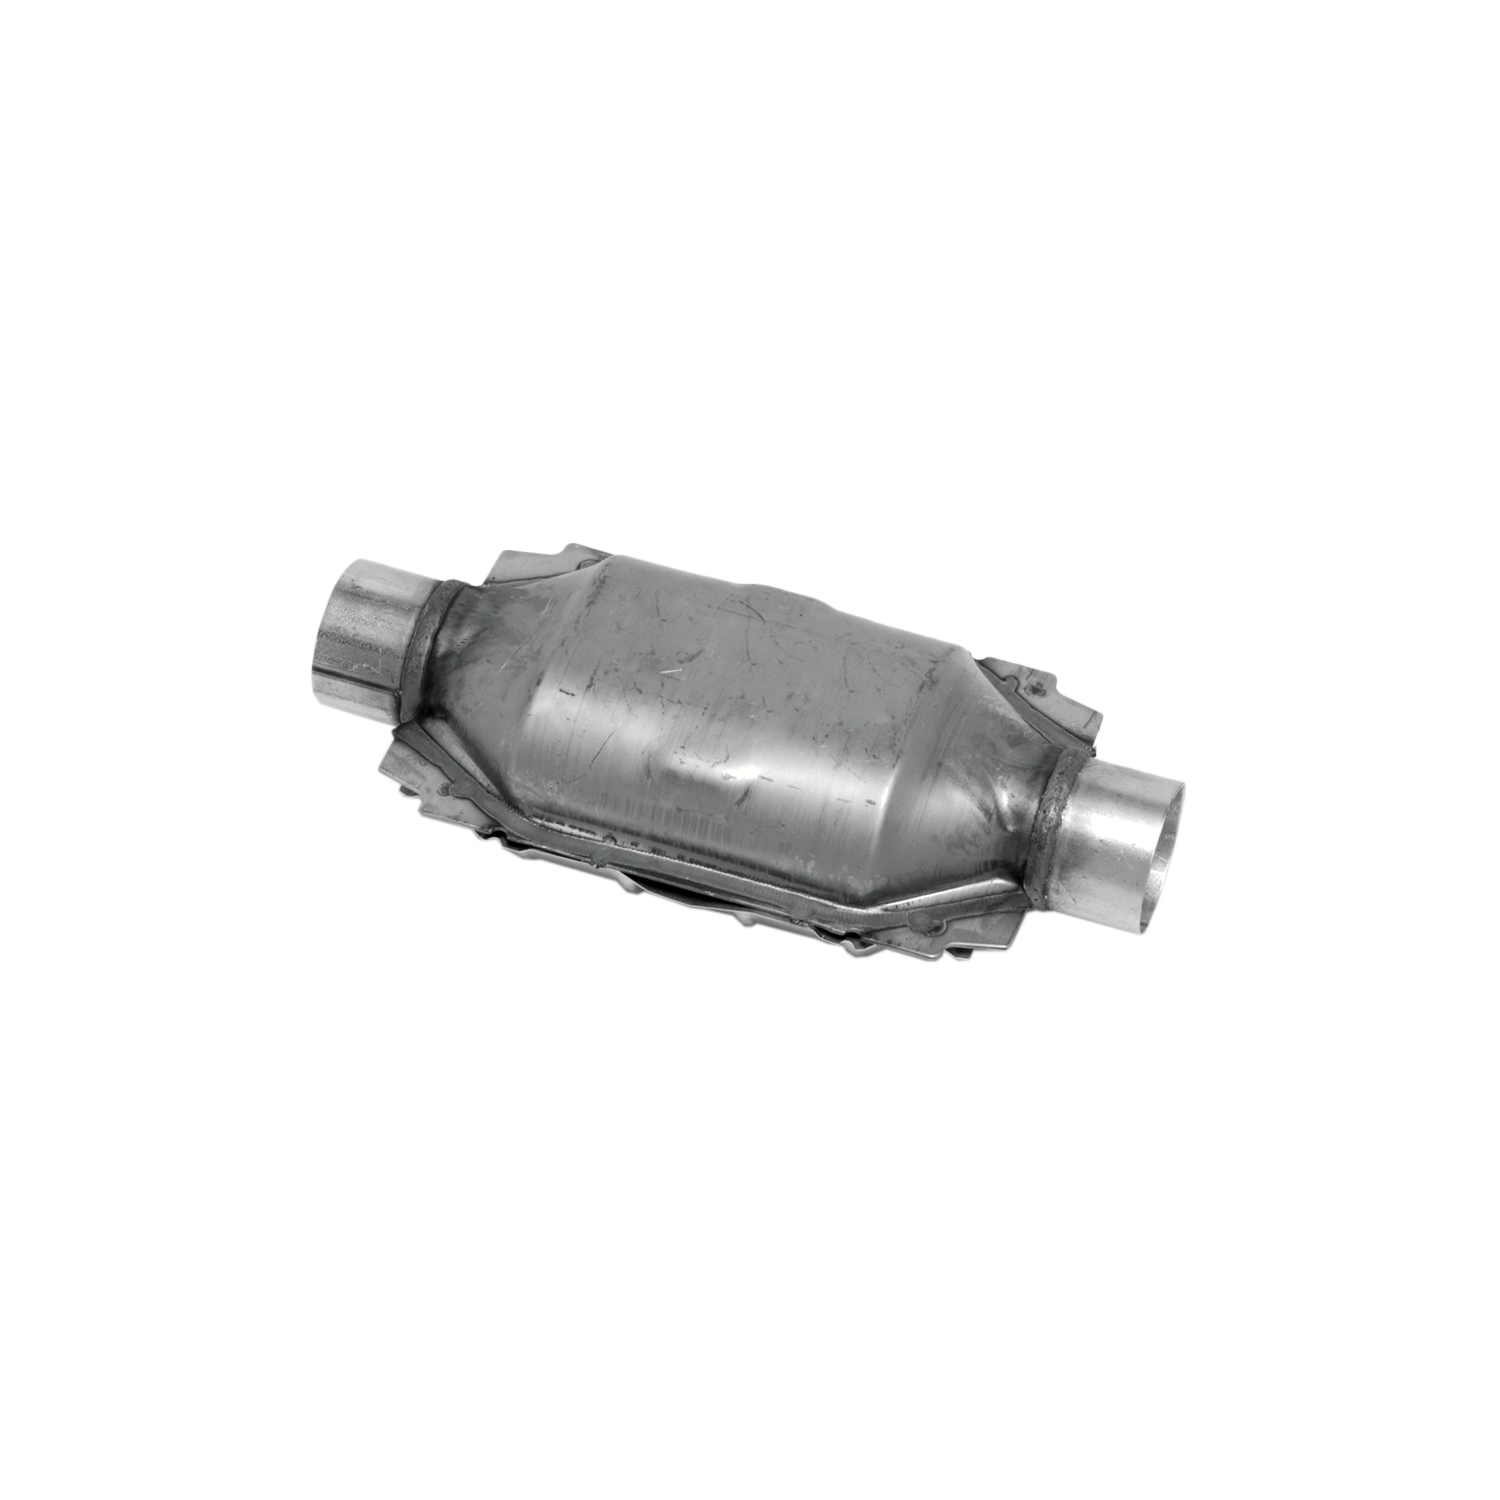 93239 Walker Exhaust Catalytic Converter Small Oval Stainless Steel